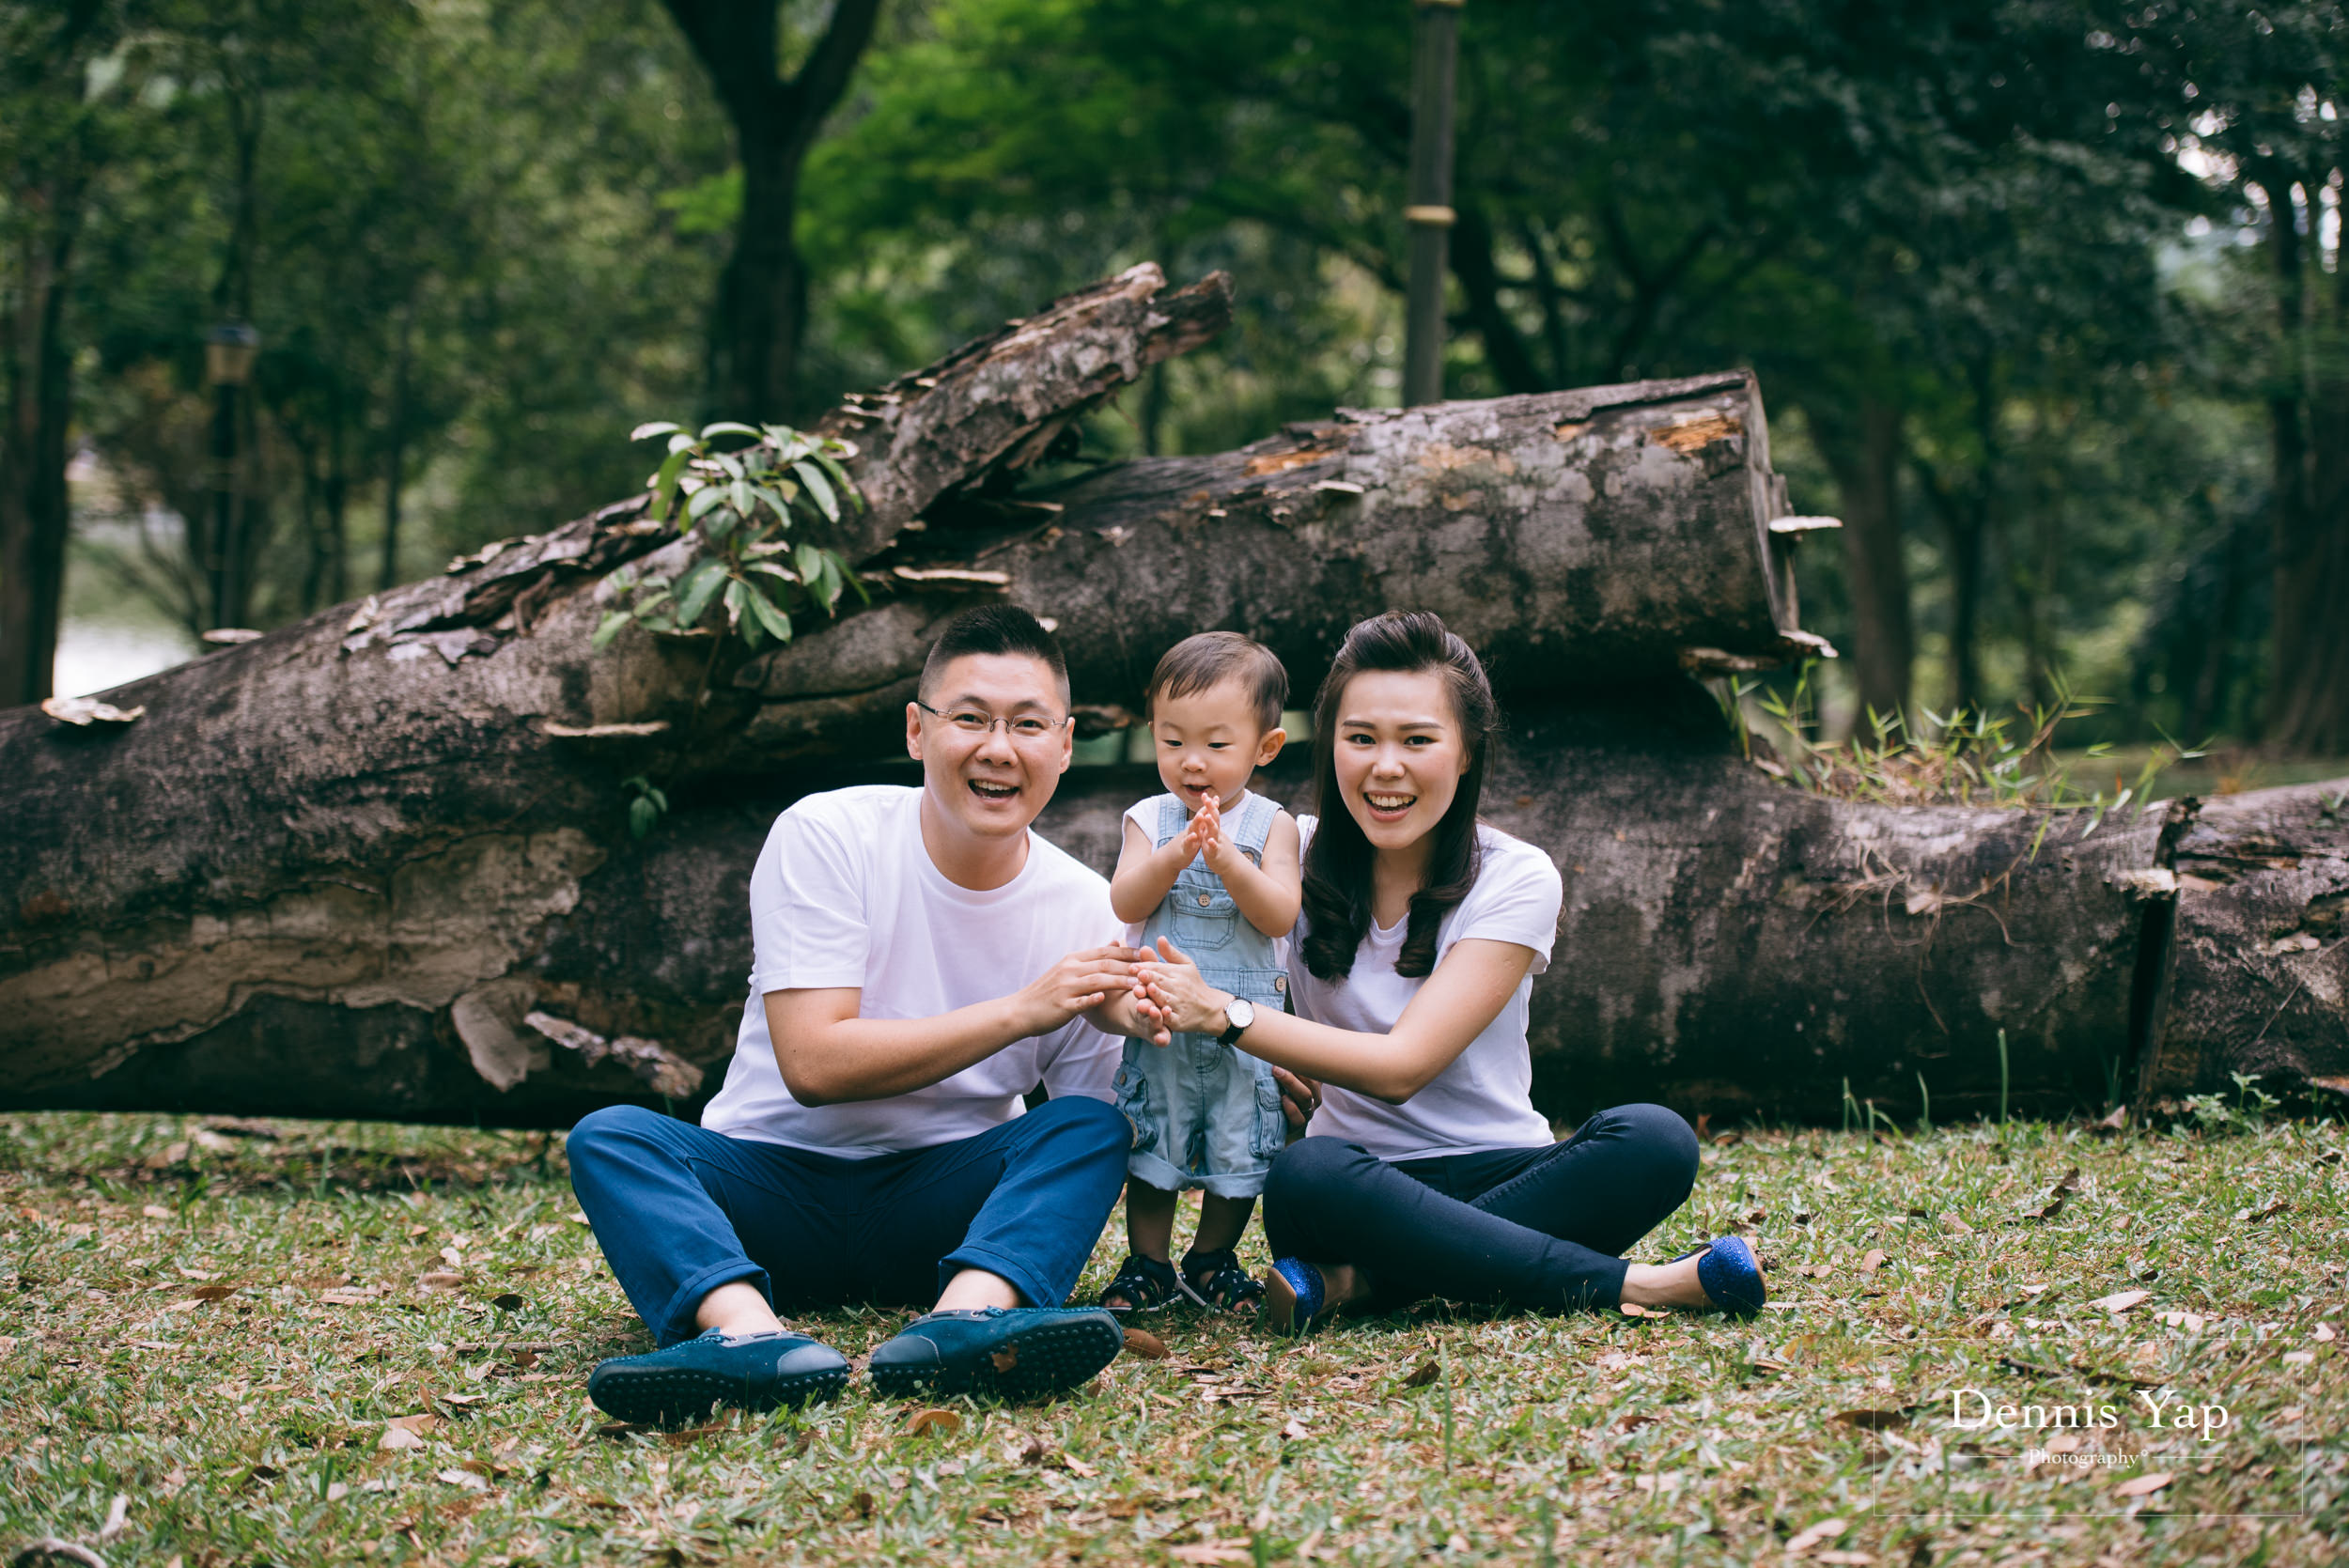 mourice baby 4 in 1 portrait dennis yap photography lake gardens family portrait-2.jpg